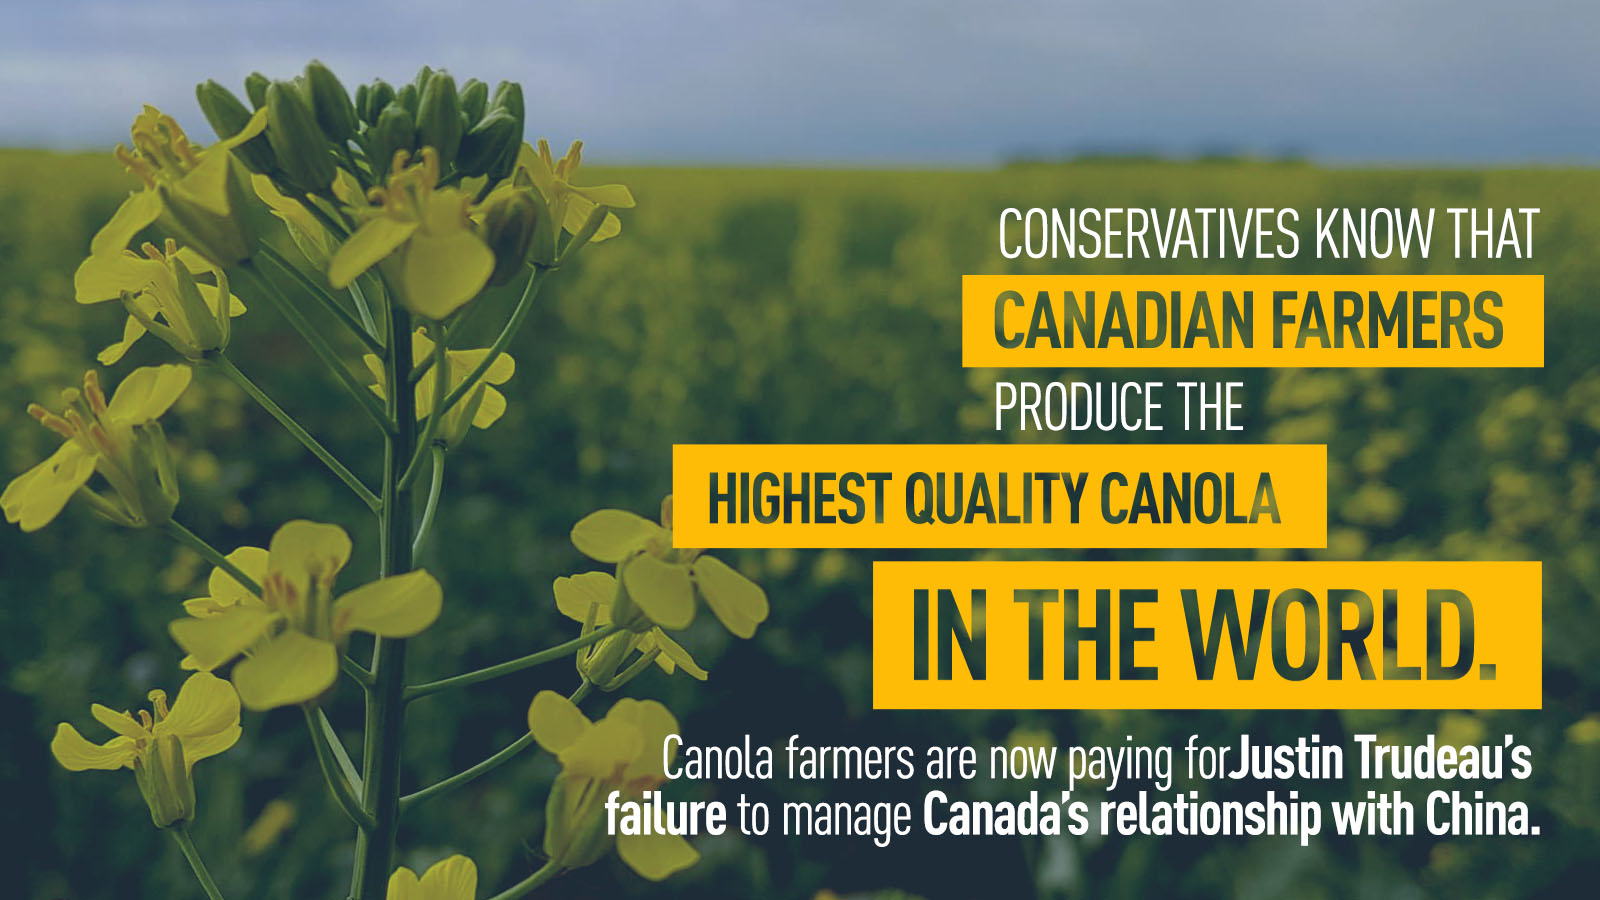 LIBERALS REJECT DEBATE ON CANADA-CHINA CANOLA CRISIS